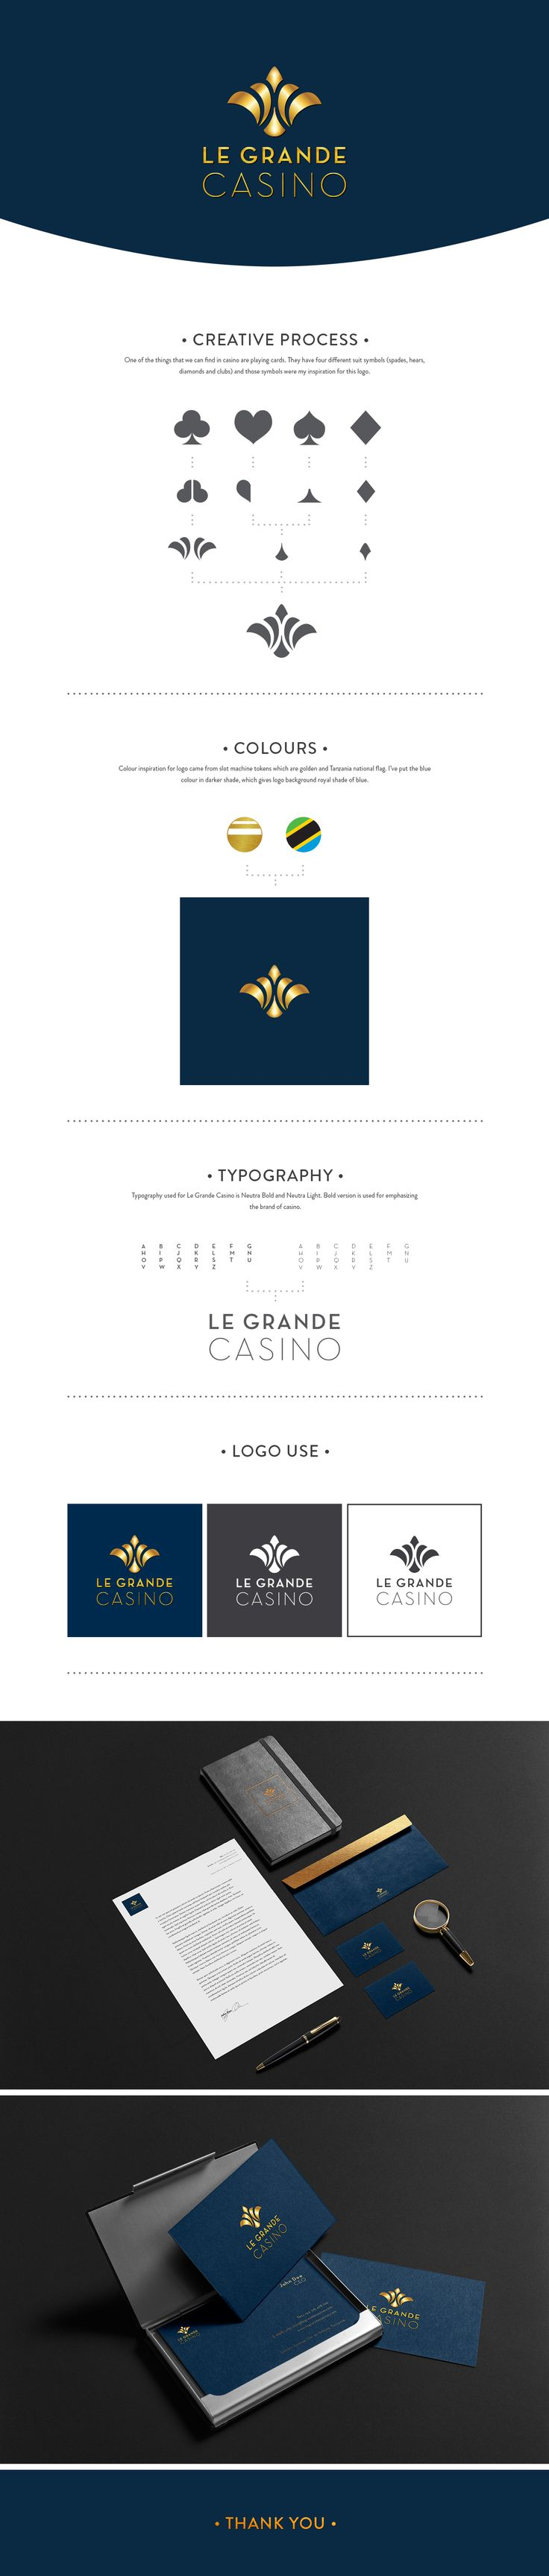 Le Grande Casino on Behance